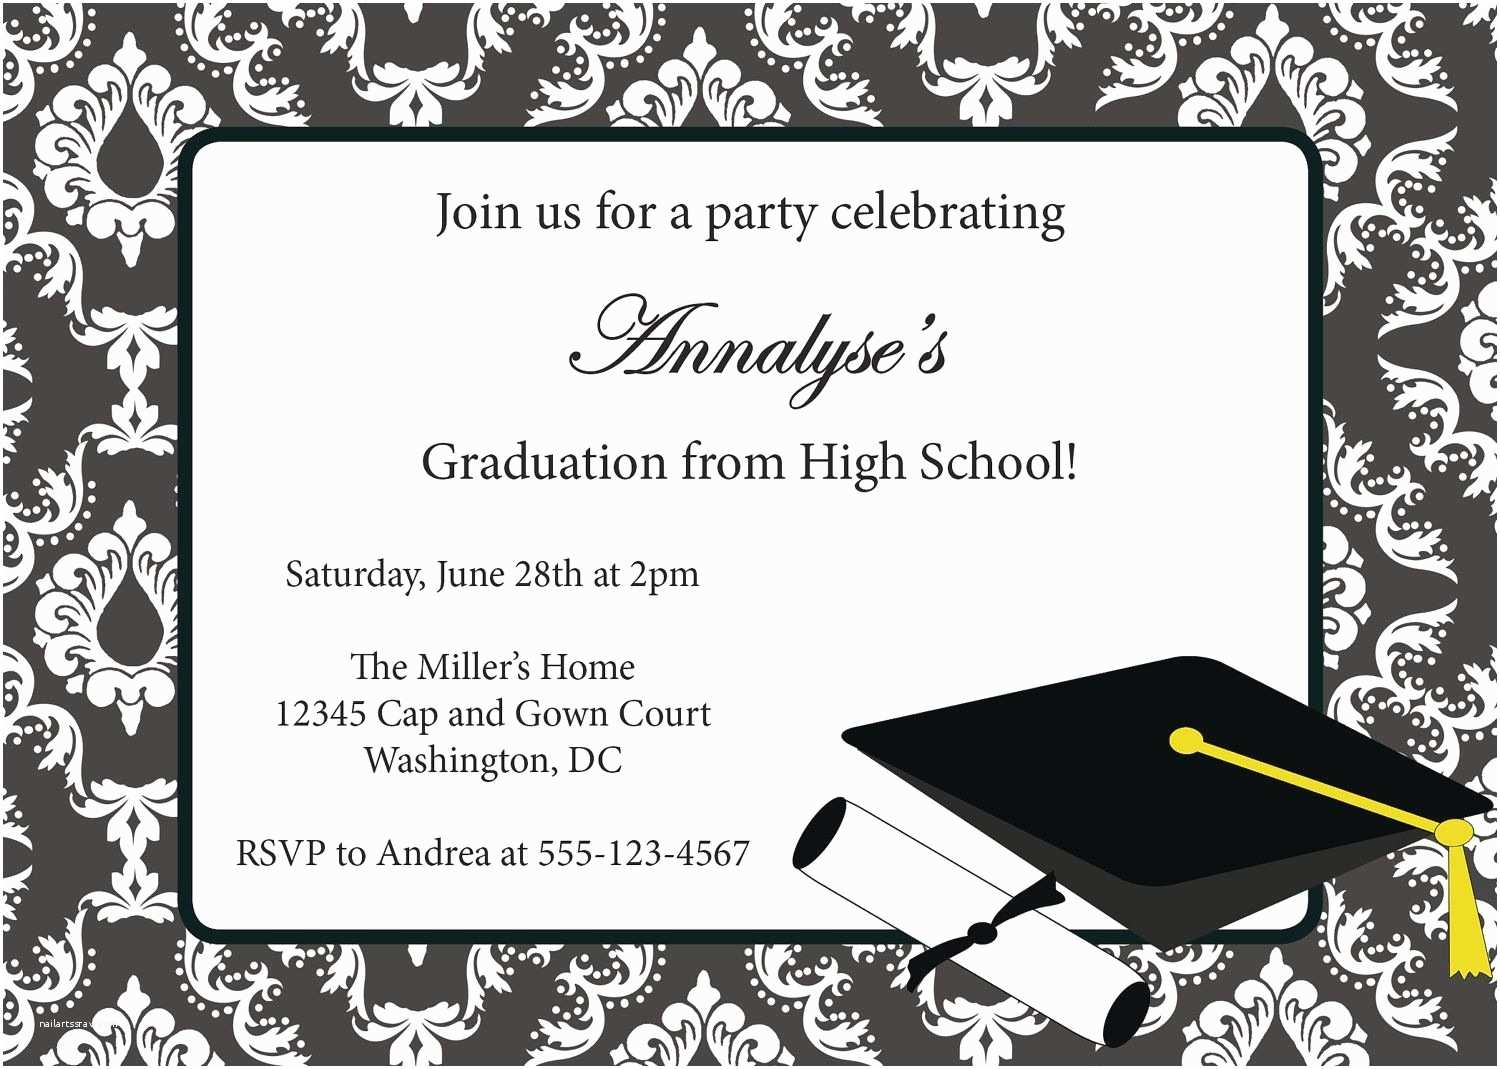 Graduation Party Invitations Invitation Card for Graduation Party Sample Invitation